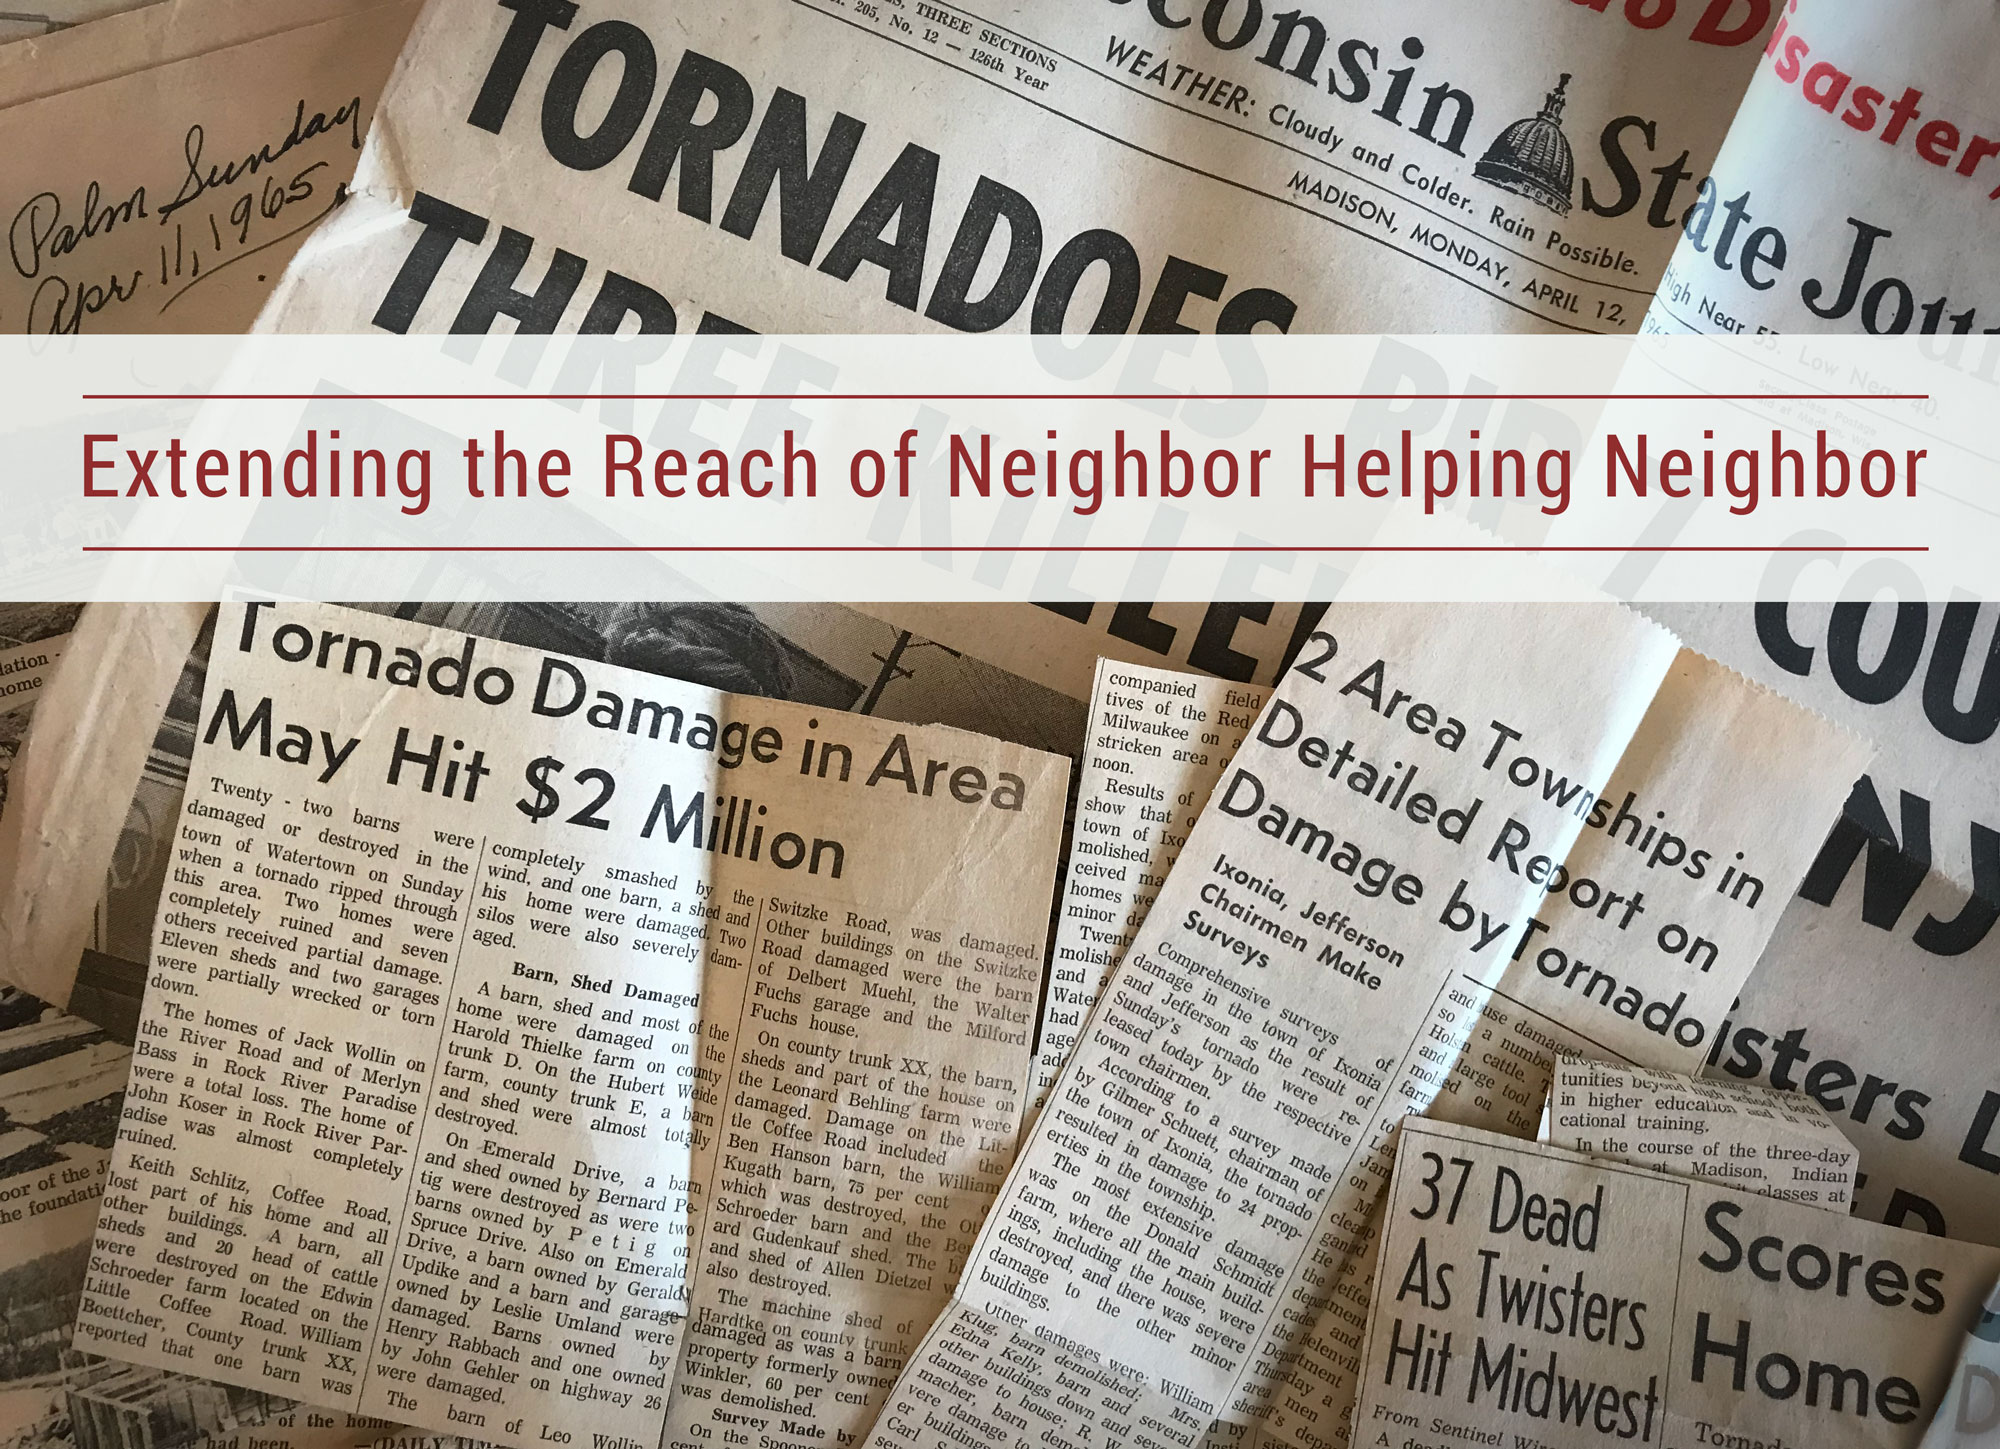 Newspaper clippings of 1965 Palm Sunday Tornado, Forward Mutual Insurance Company